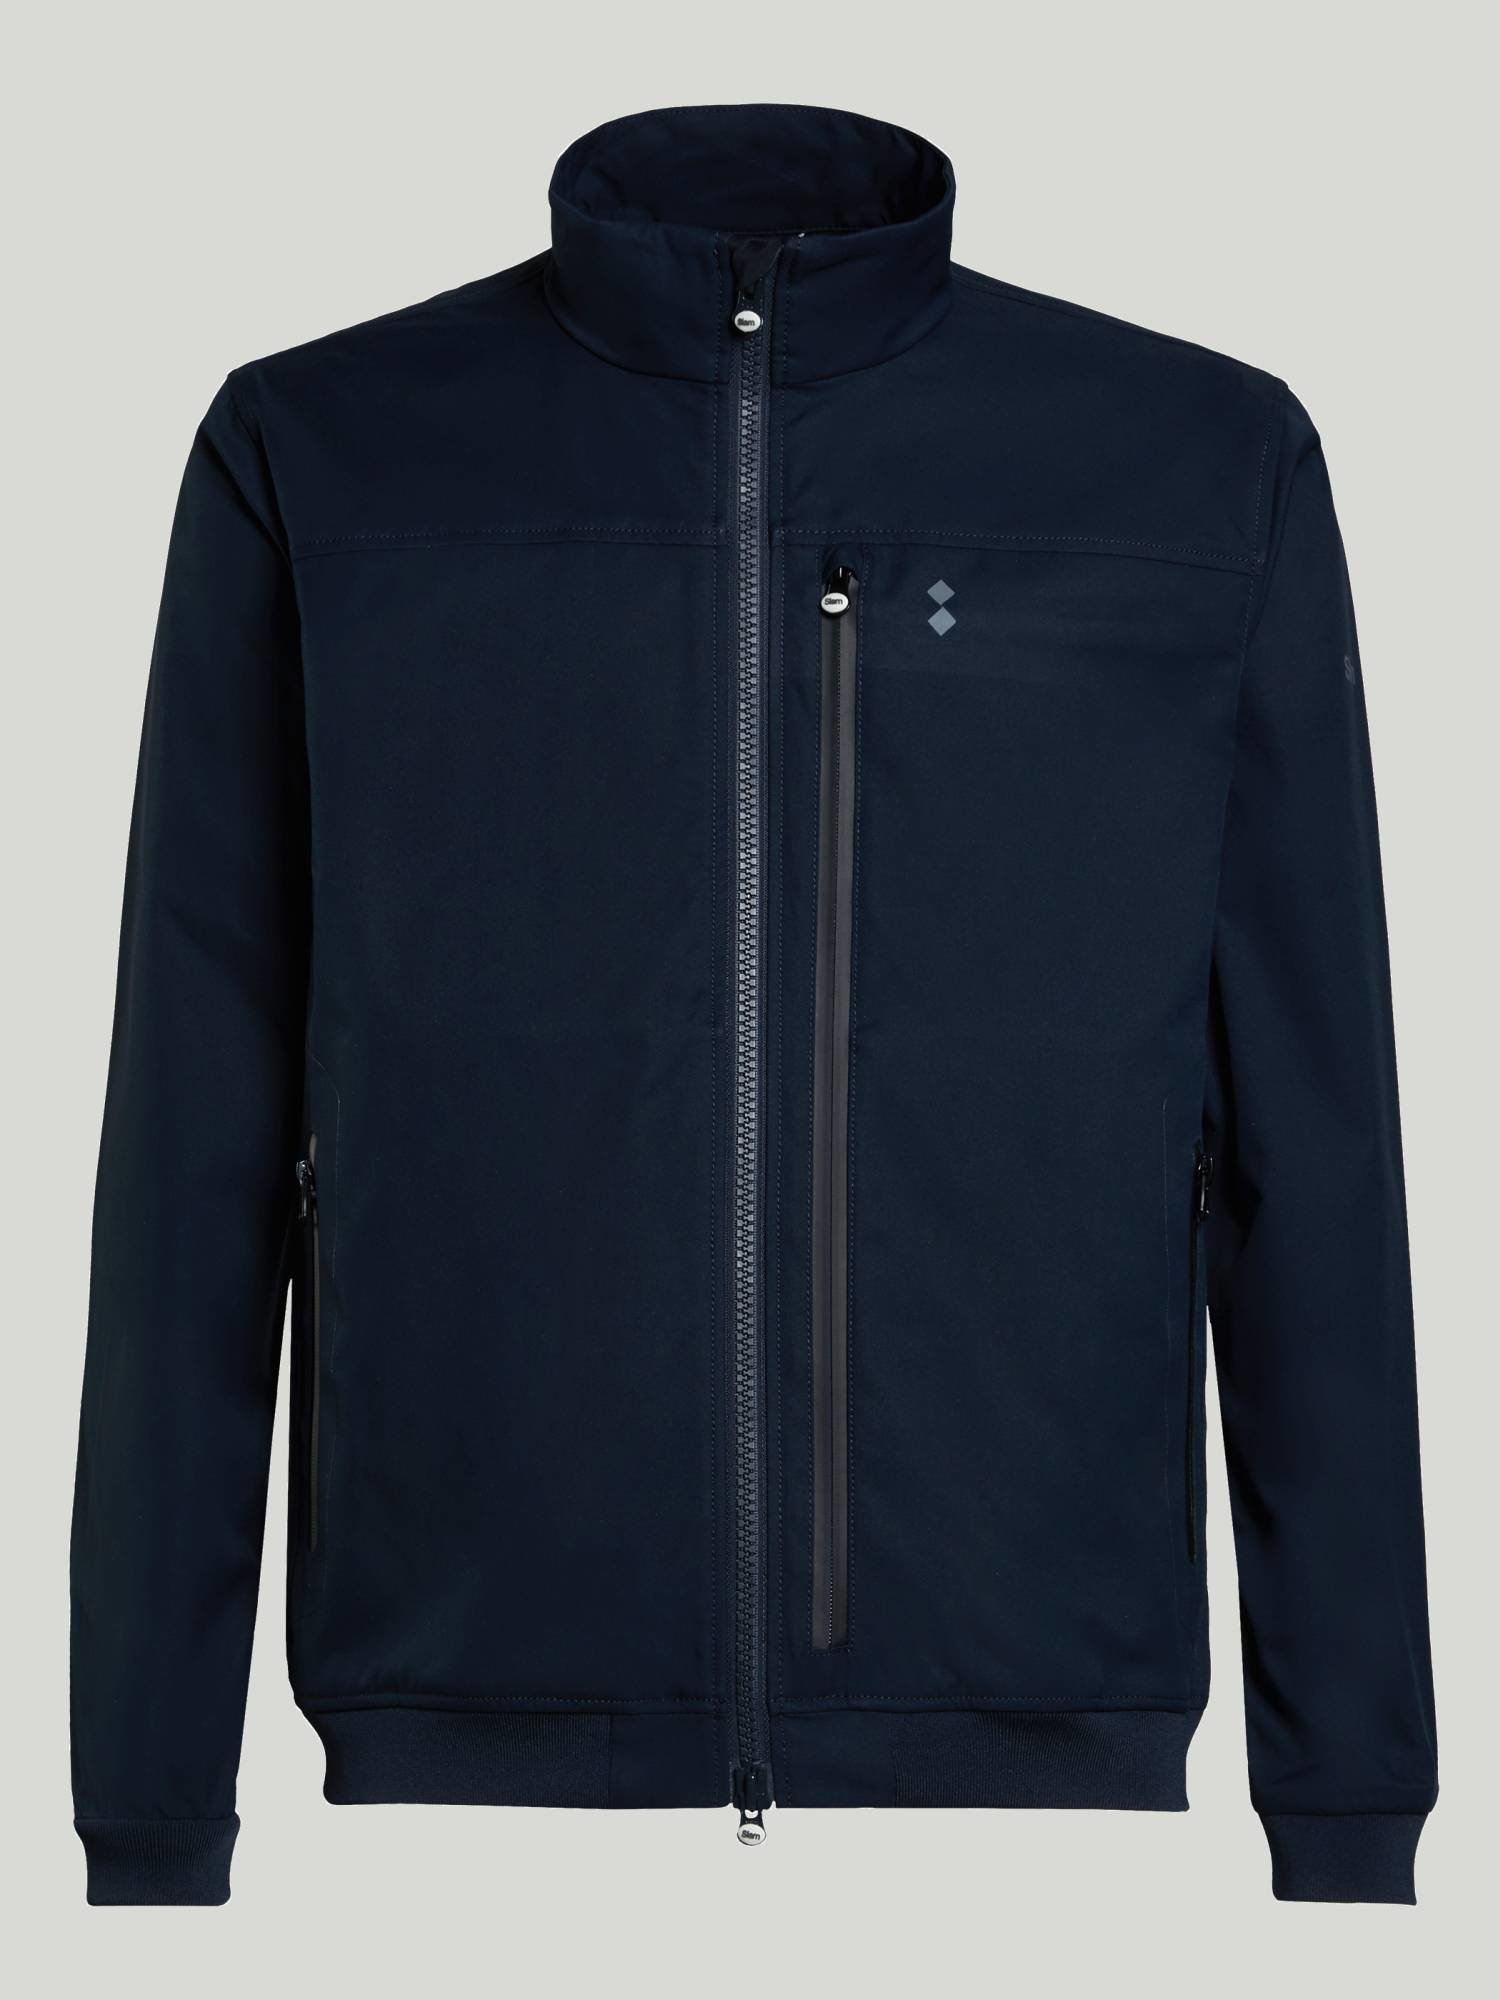 Jacket A65 - Marinenblau